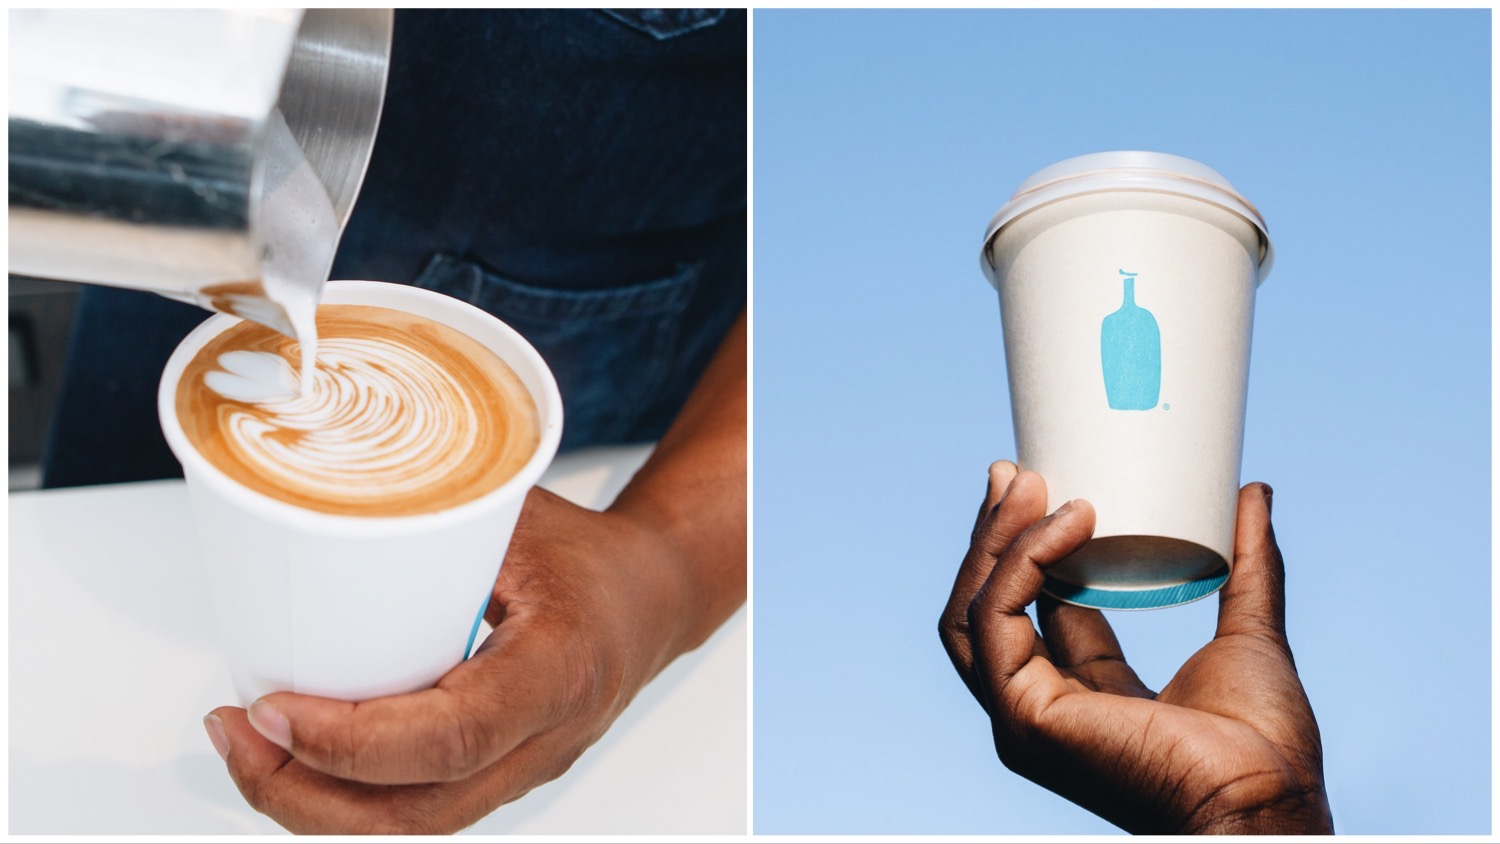 Split image of a barista pouring latte art (left) and someone holding up a Blue Bottle Coffee cup (right).